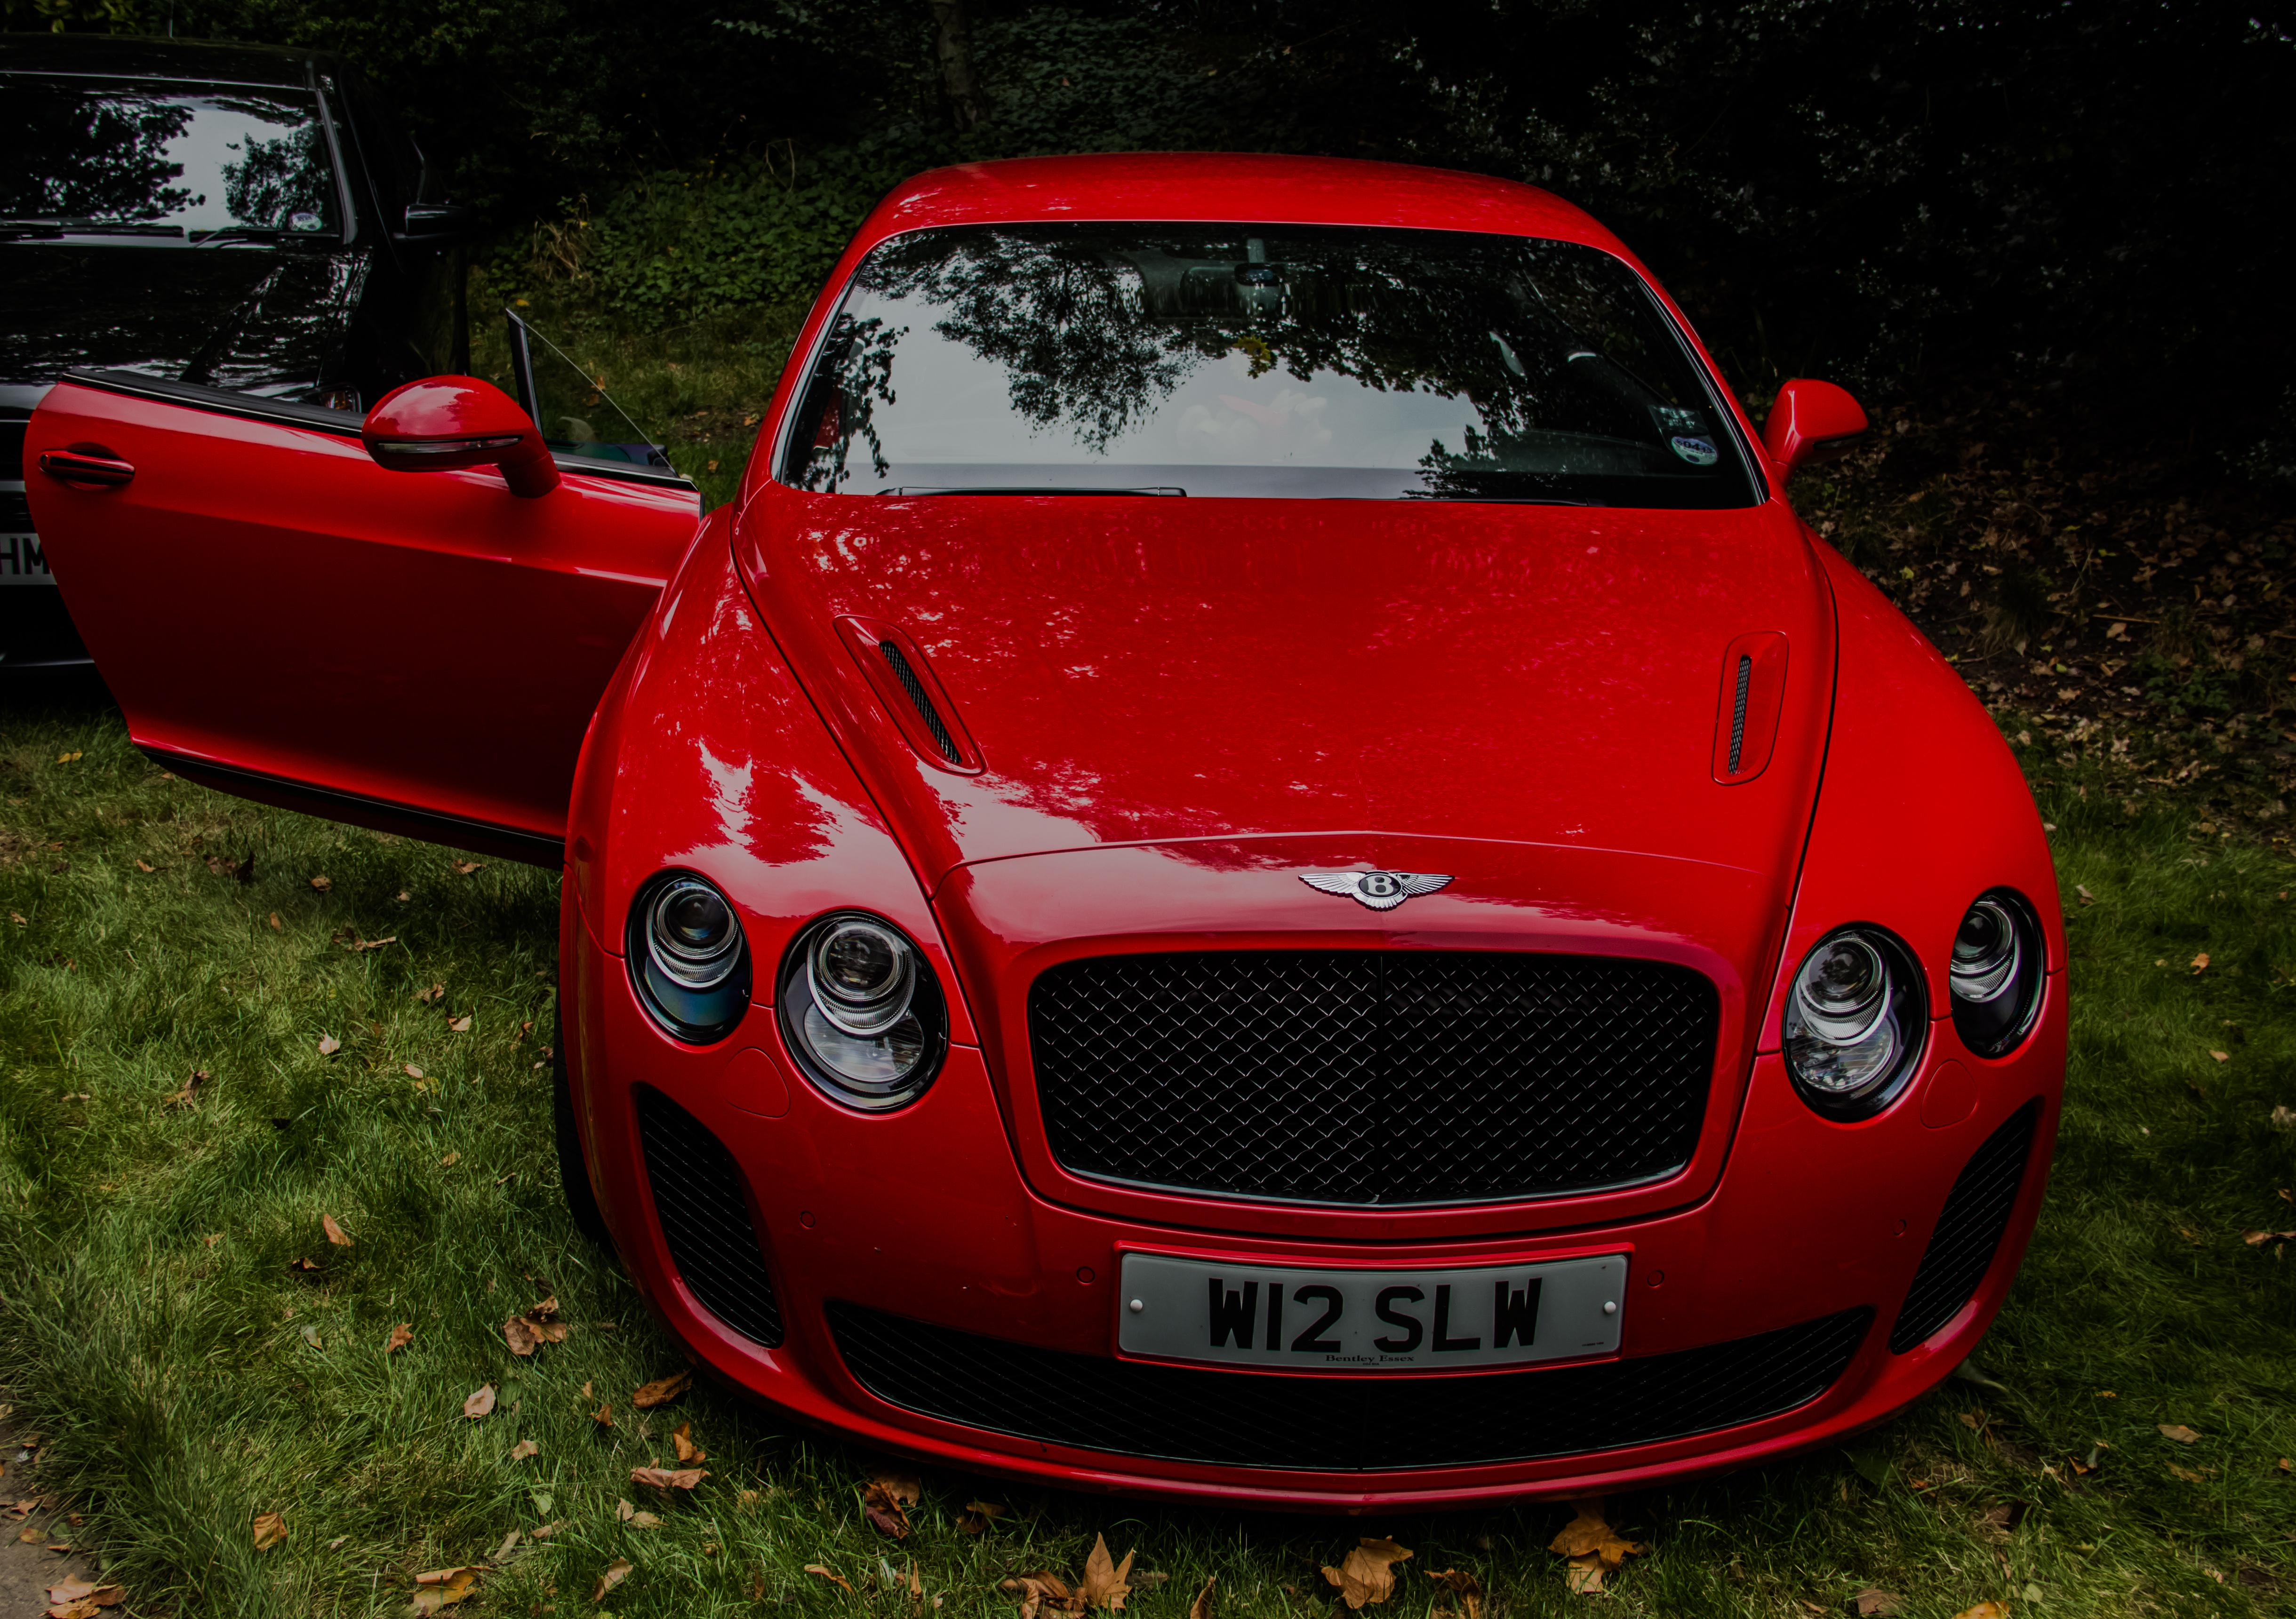 Download wallpapers 4879x3441 bentley continental gt, red, front view